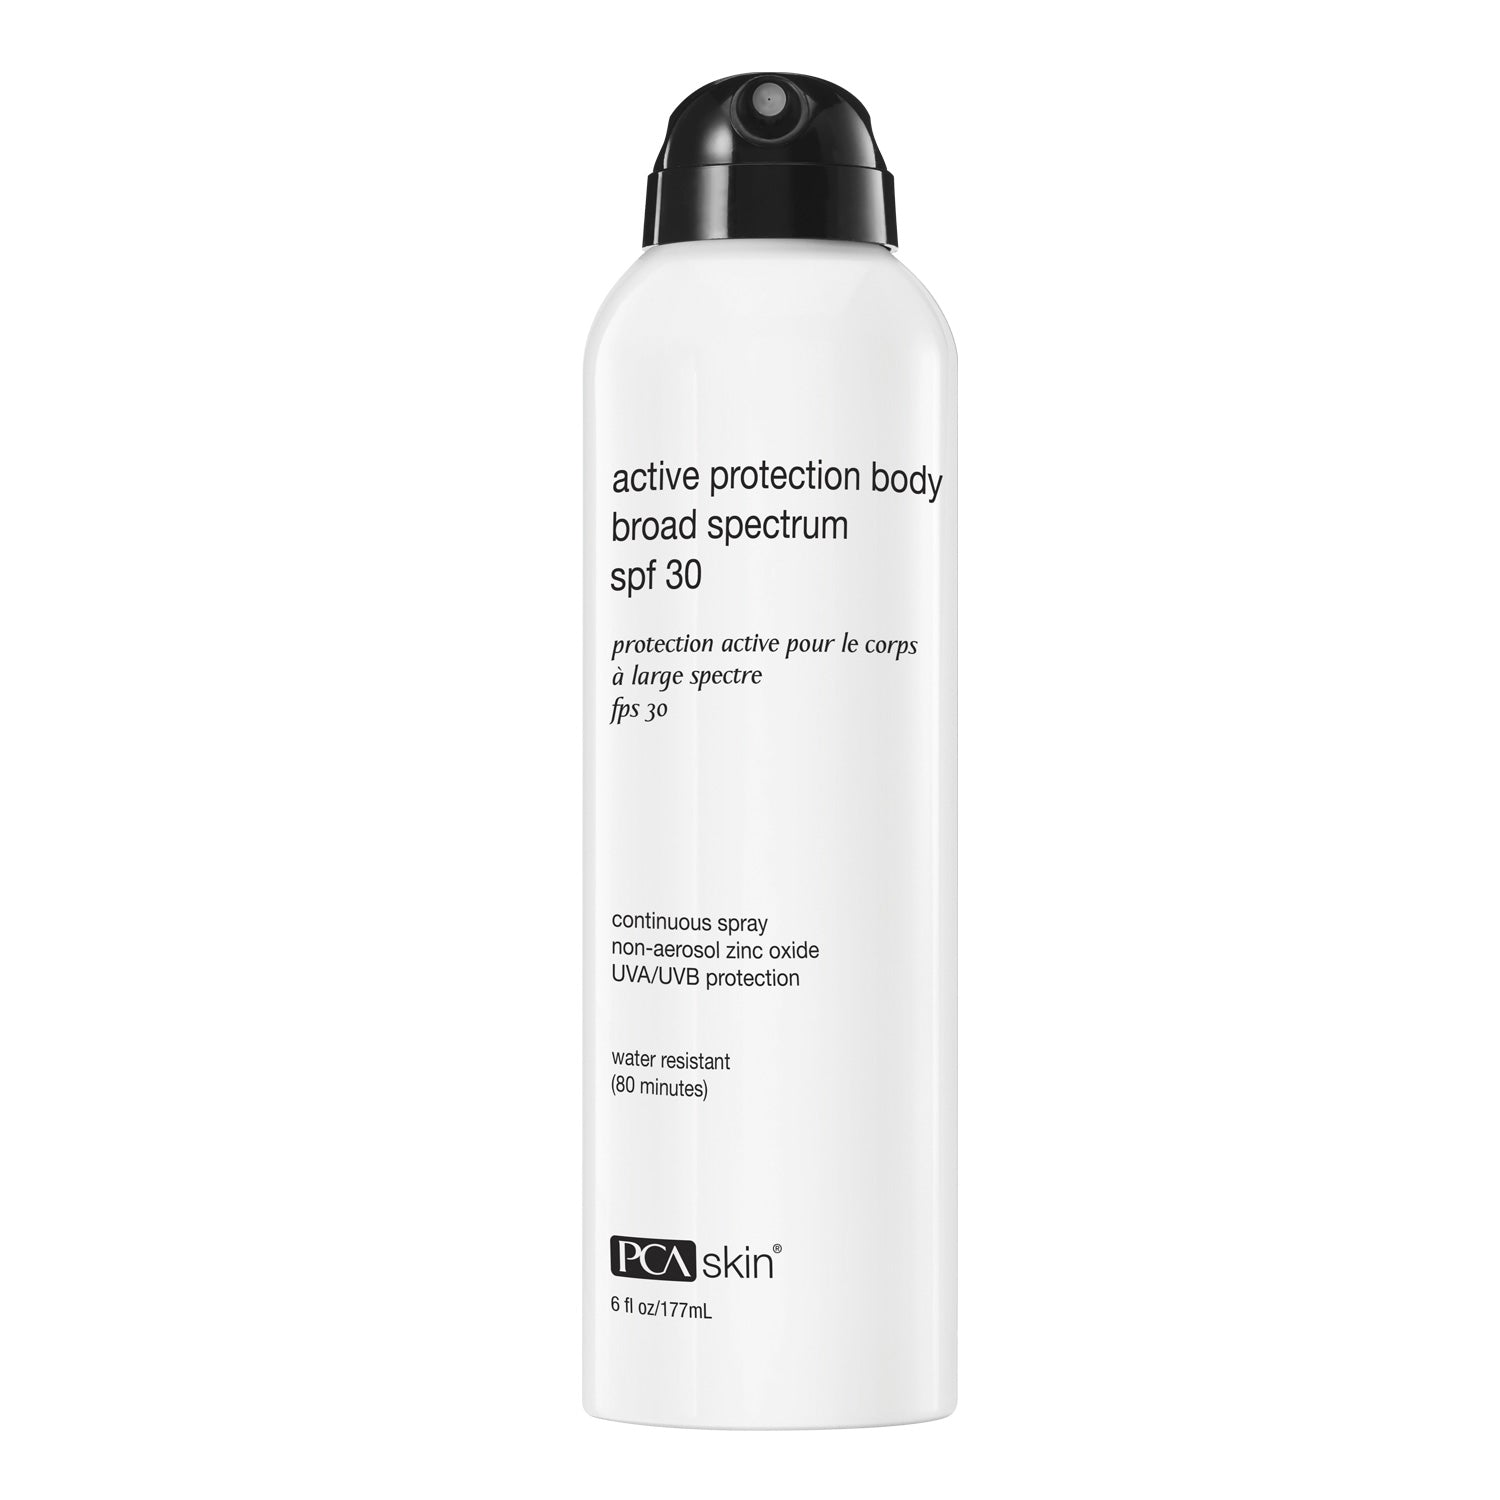 Active Protection Body Broad Spectrum SPF 30